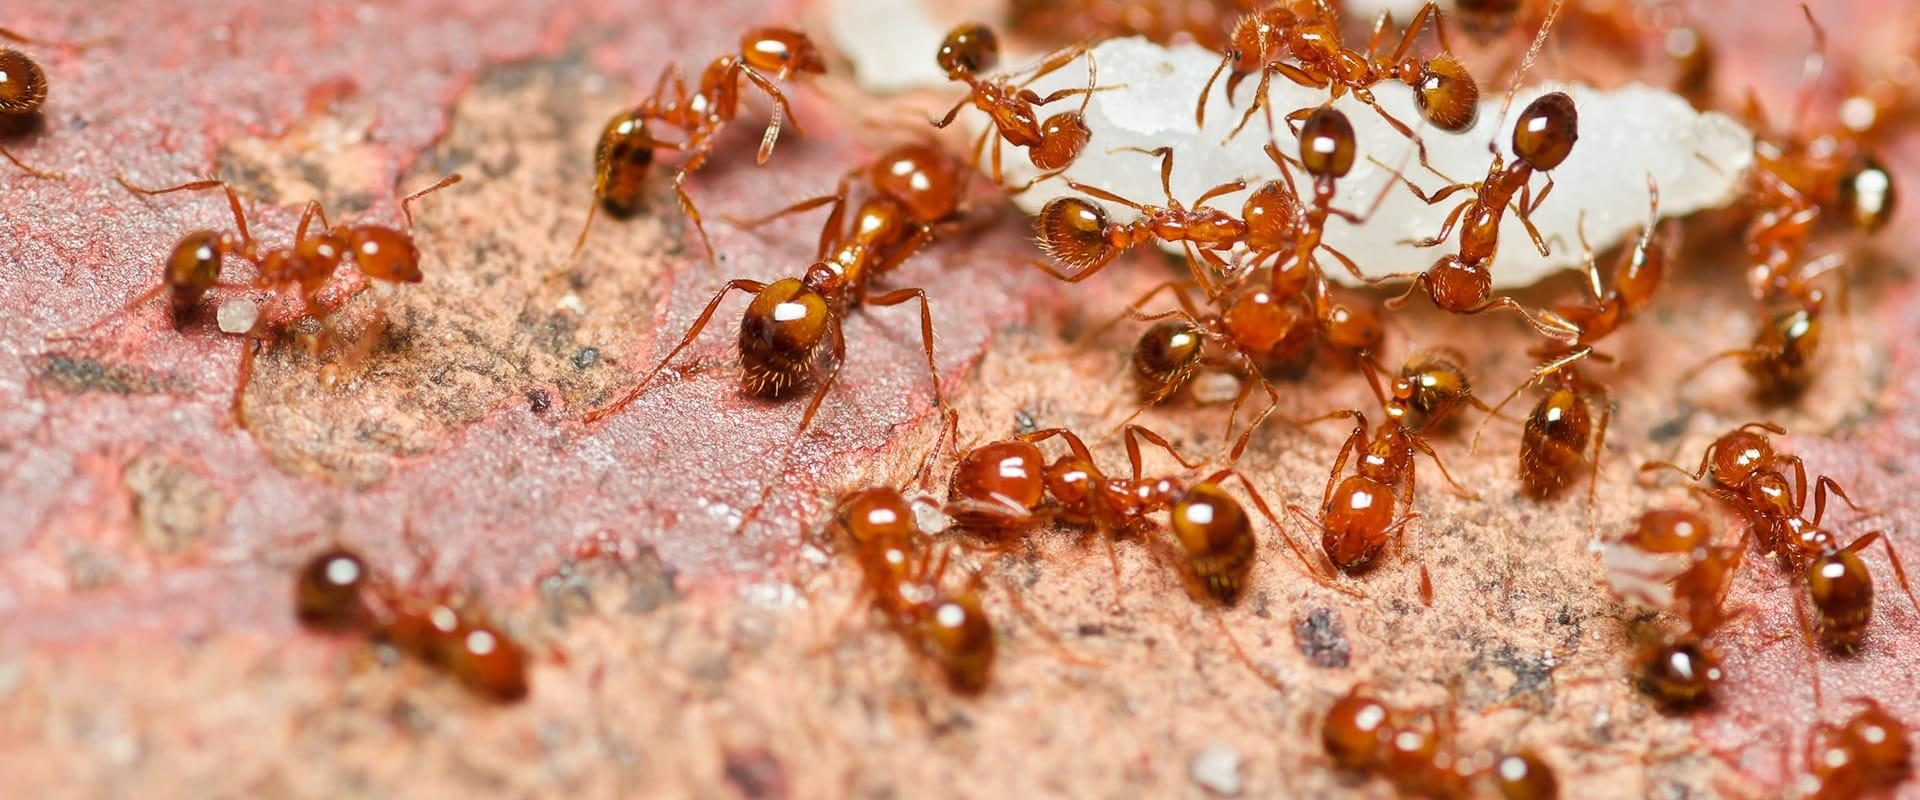 a swarm of fire ants outside of a home in boca raton florida